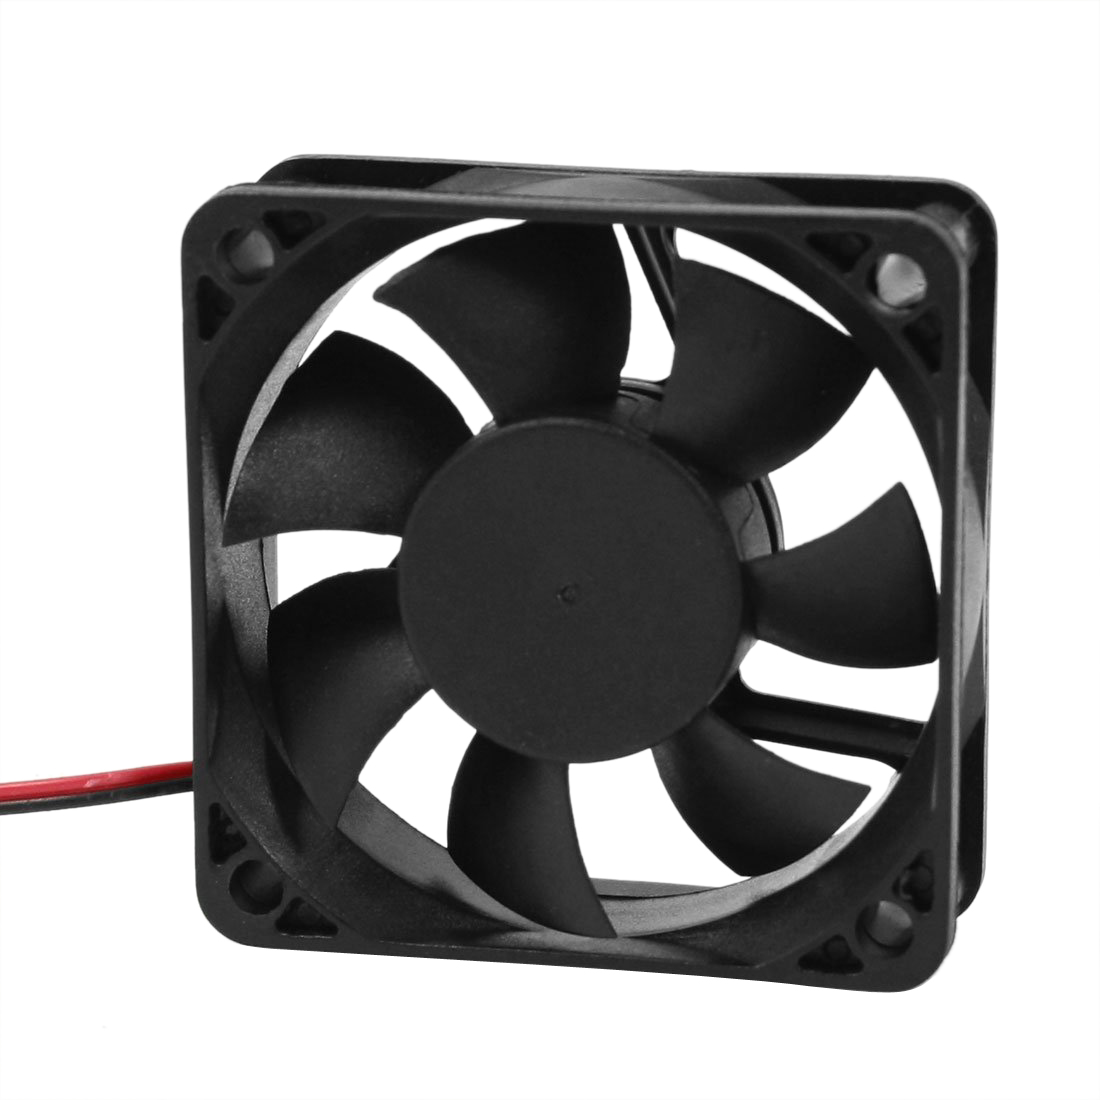 PROMOTION! Hot Sale DC 12V 2Pins Cooling Fan 60mm x 15mm for PC Computer Case CPU Cooler aerocool 15 blade 1 56w mute model computer cpu cooling fan black 12 x 12cm 7v